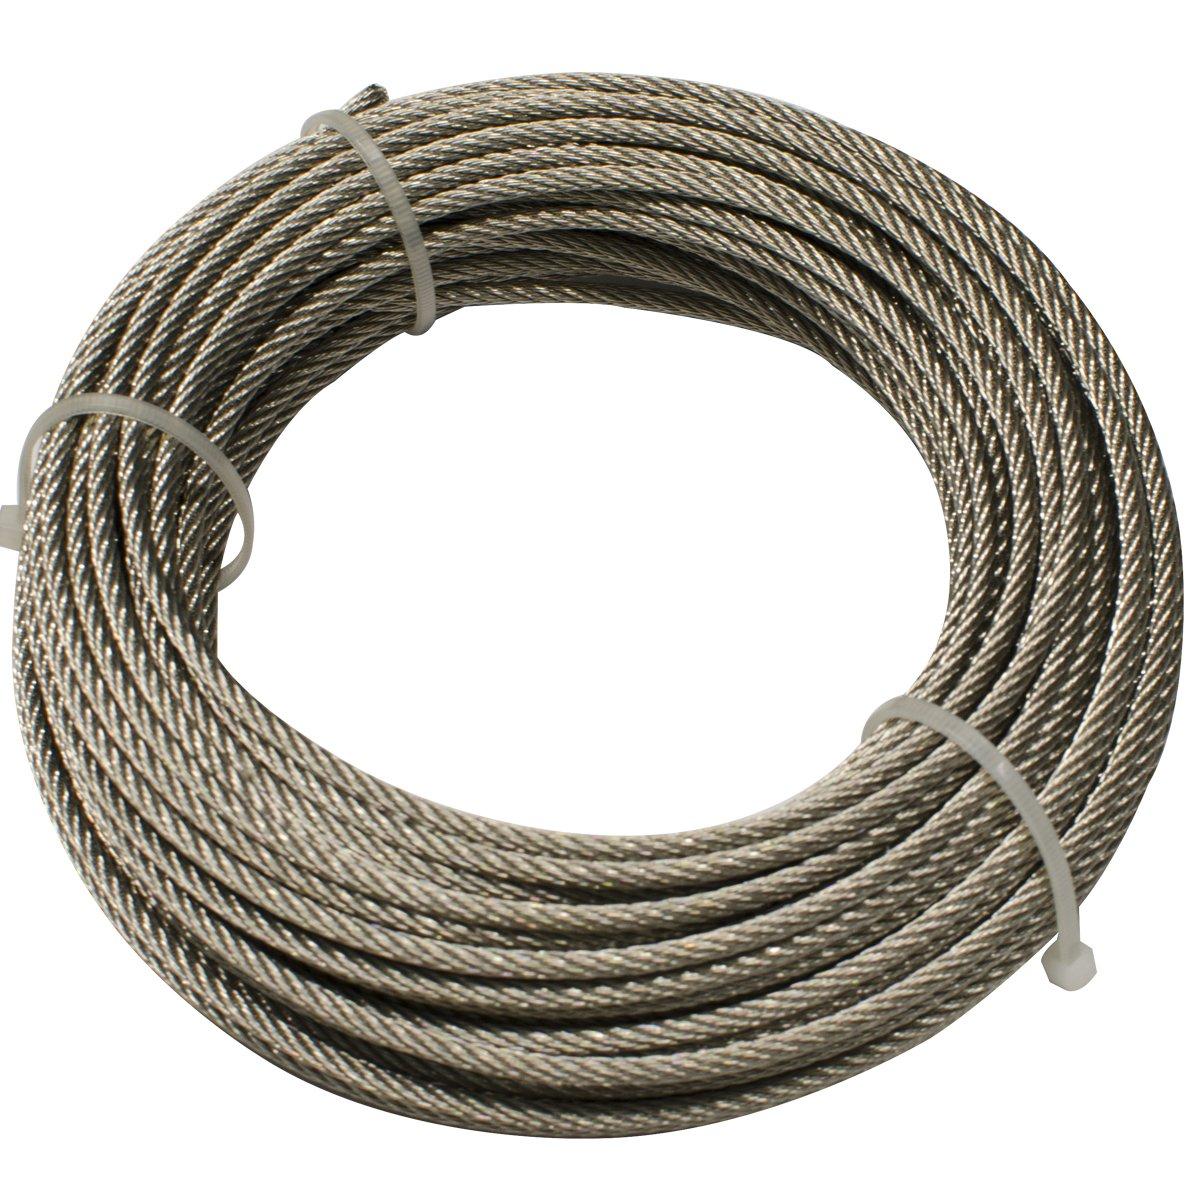 Pewag 80214 Stainless Steel Cable 3 mm rust-Resistant